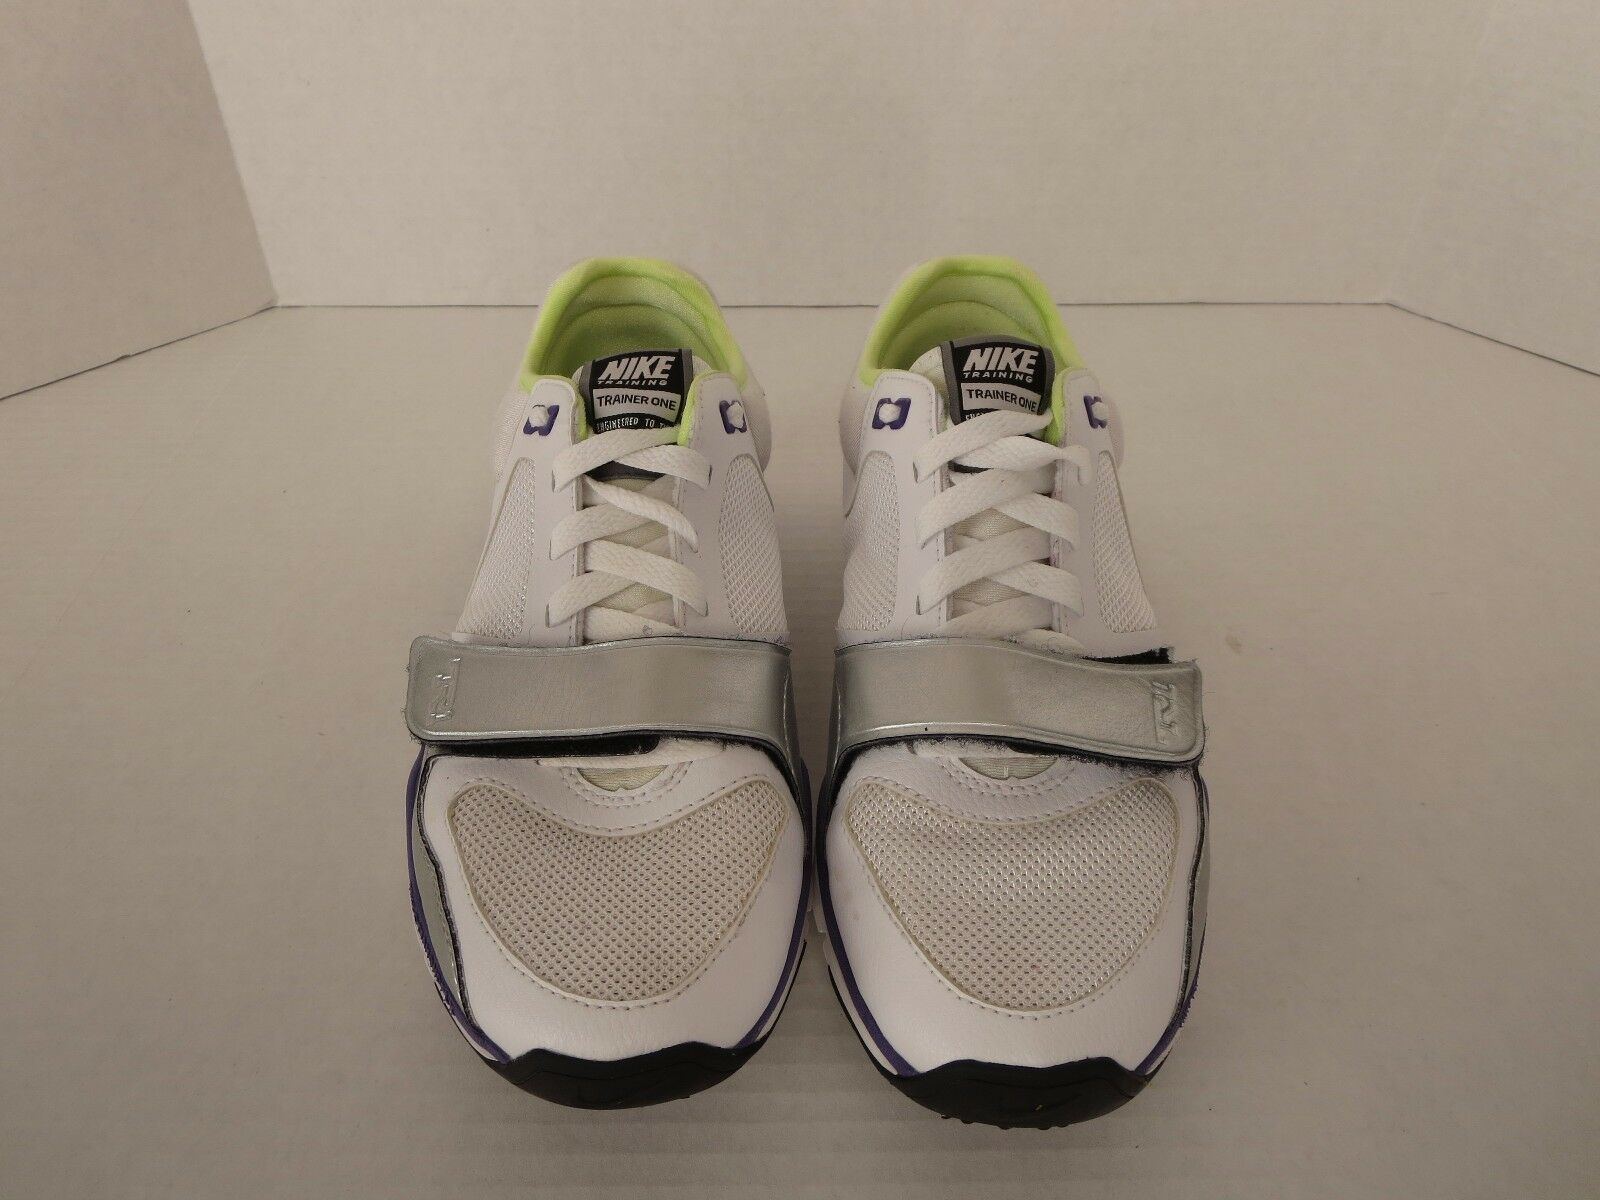 NIKE Air Max Trainer One One One Running Fitness Crossfit Marathon Shoes Women Size 6.5 6c7e62